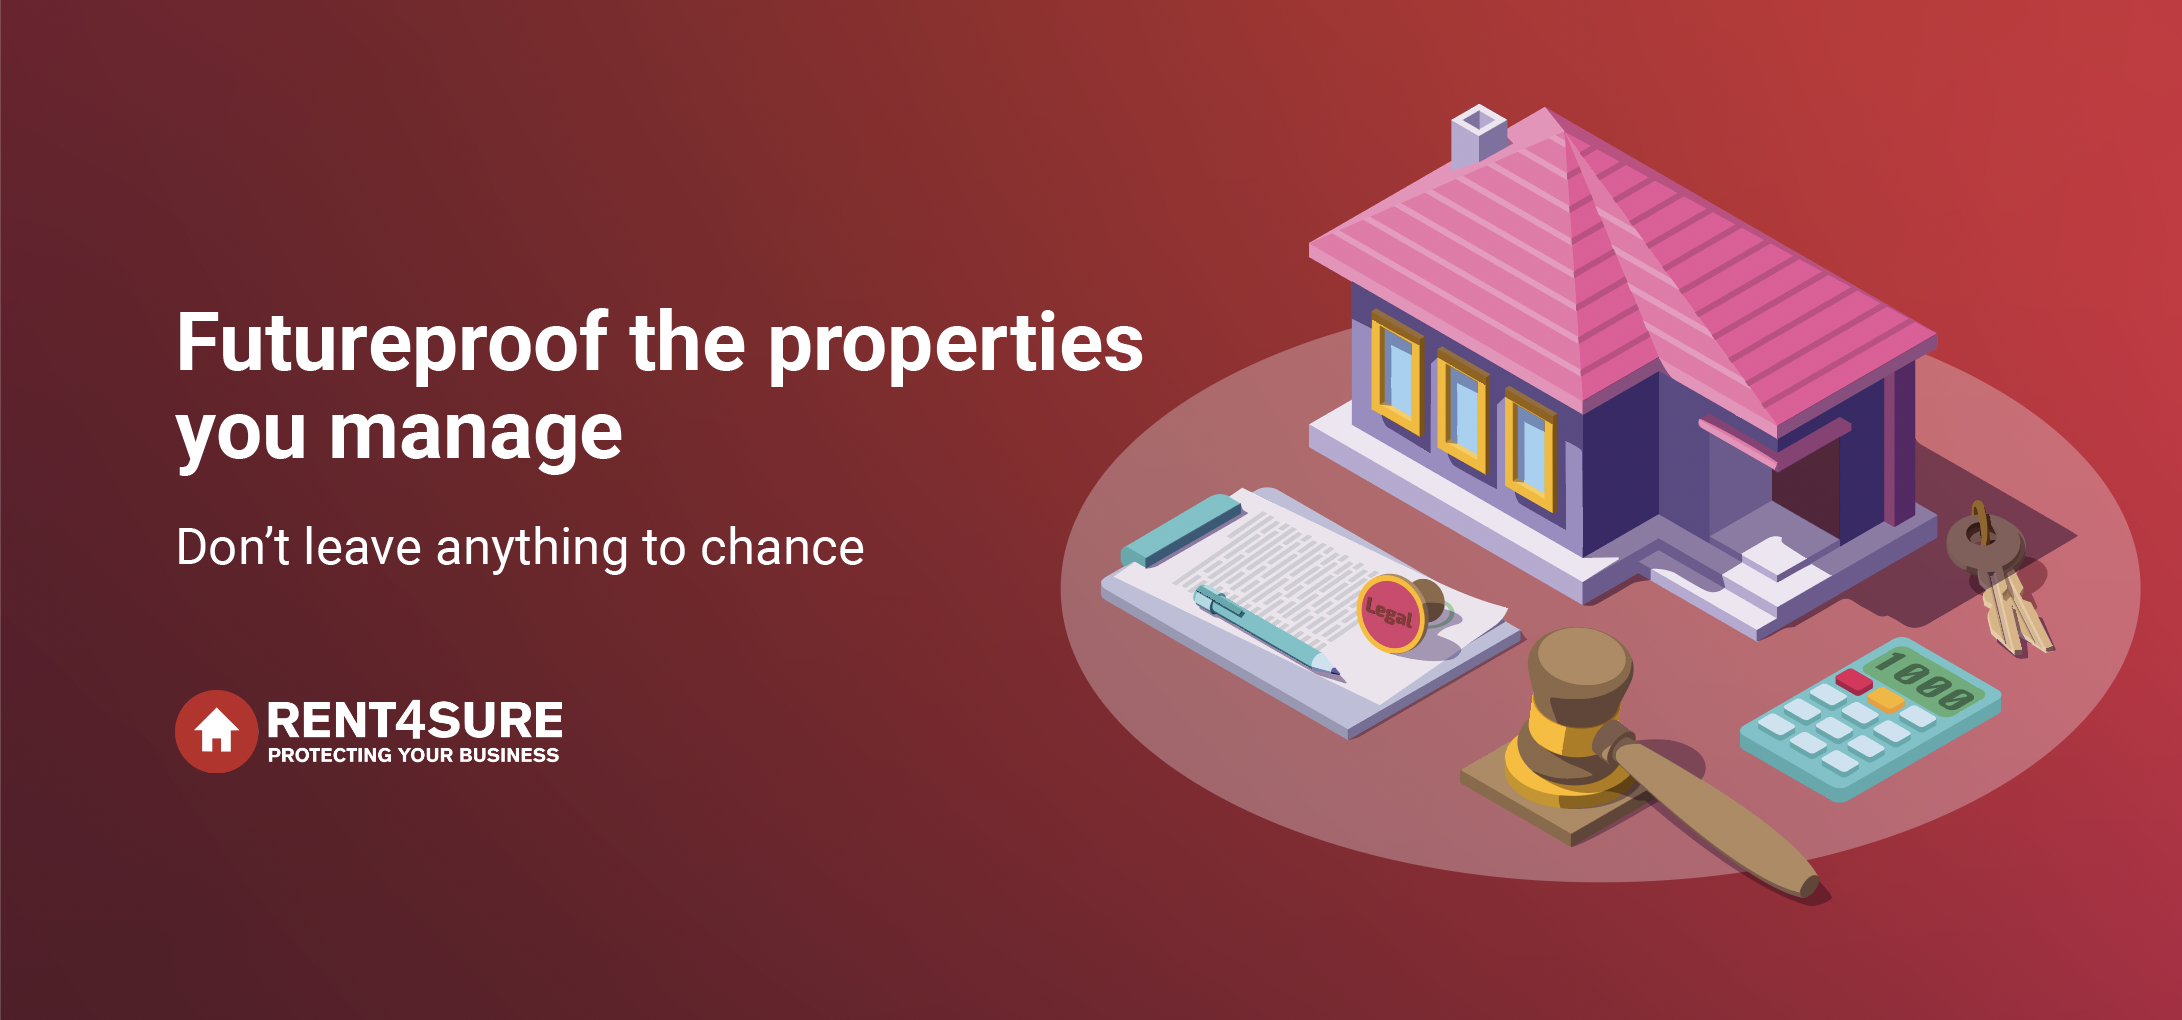 Futureproof the properties you manage